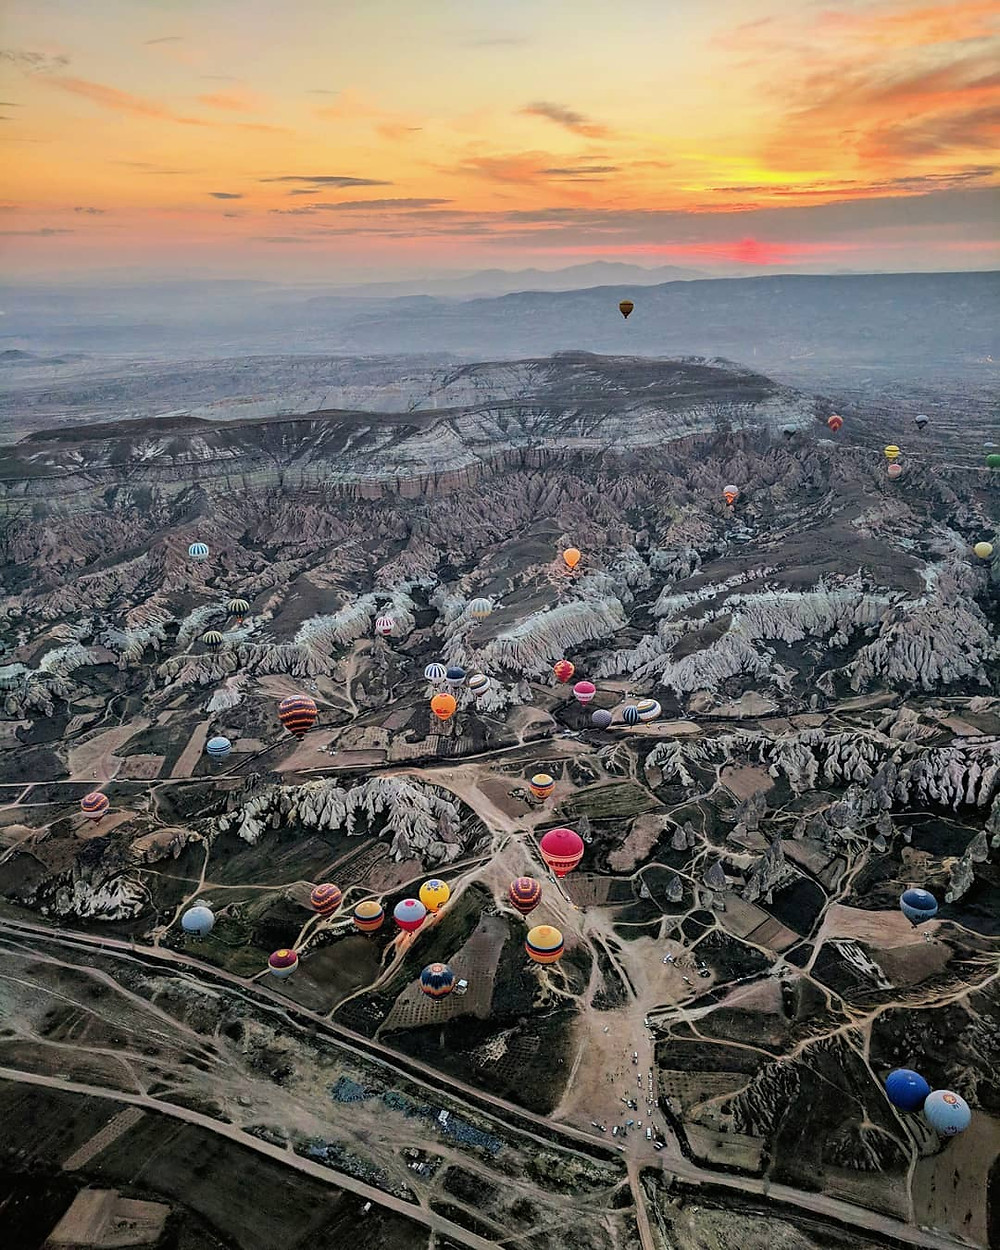 Watching the sunrise from inside a hot air balloon in Cappadocia.